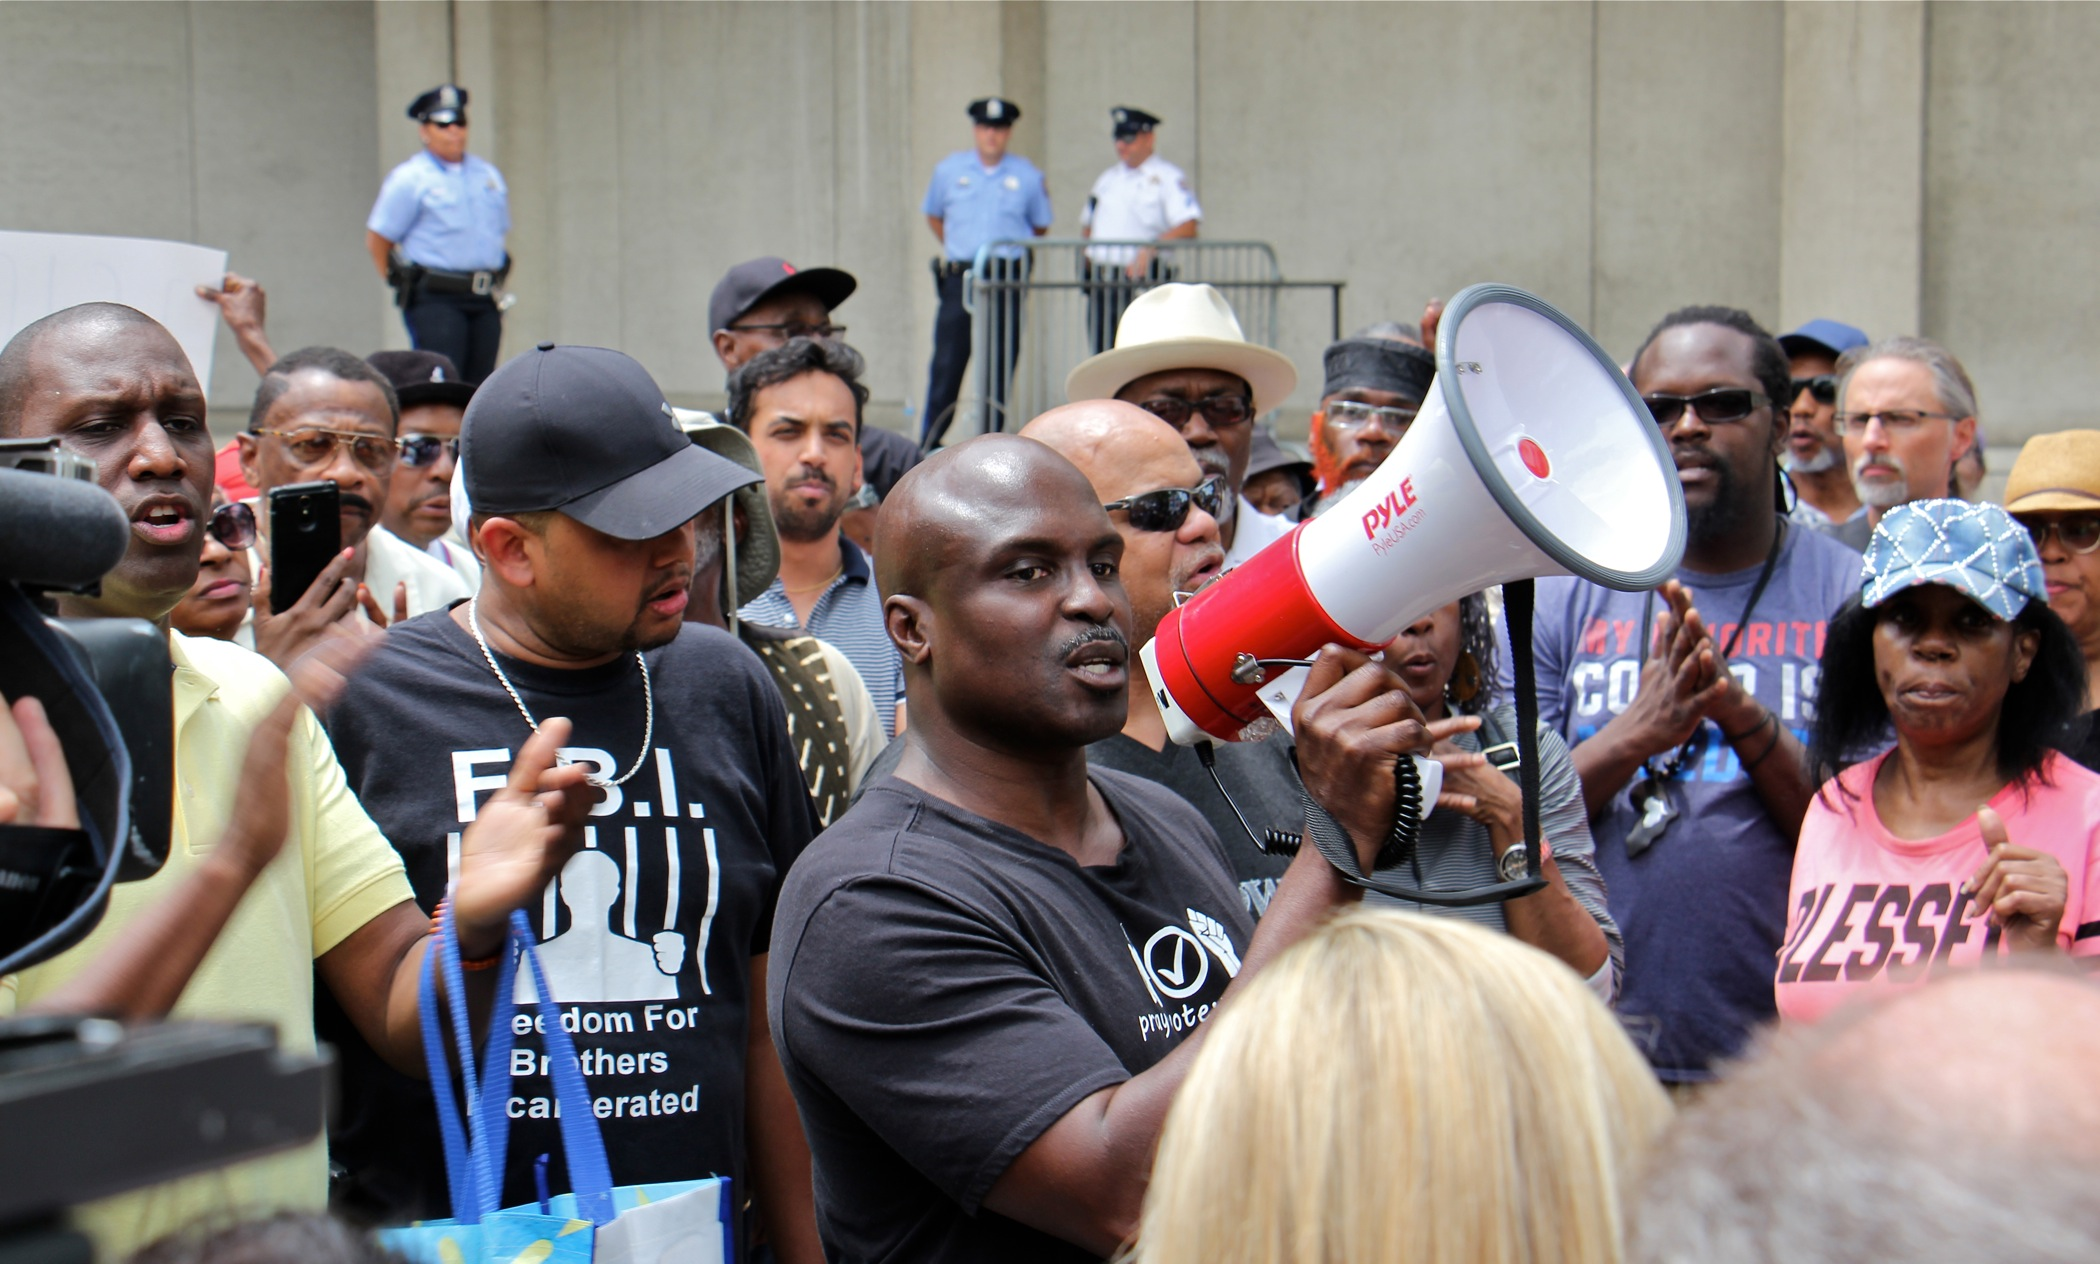 Protest at Philly Police HQ calls for action on Facebook